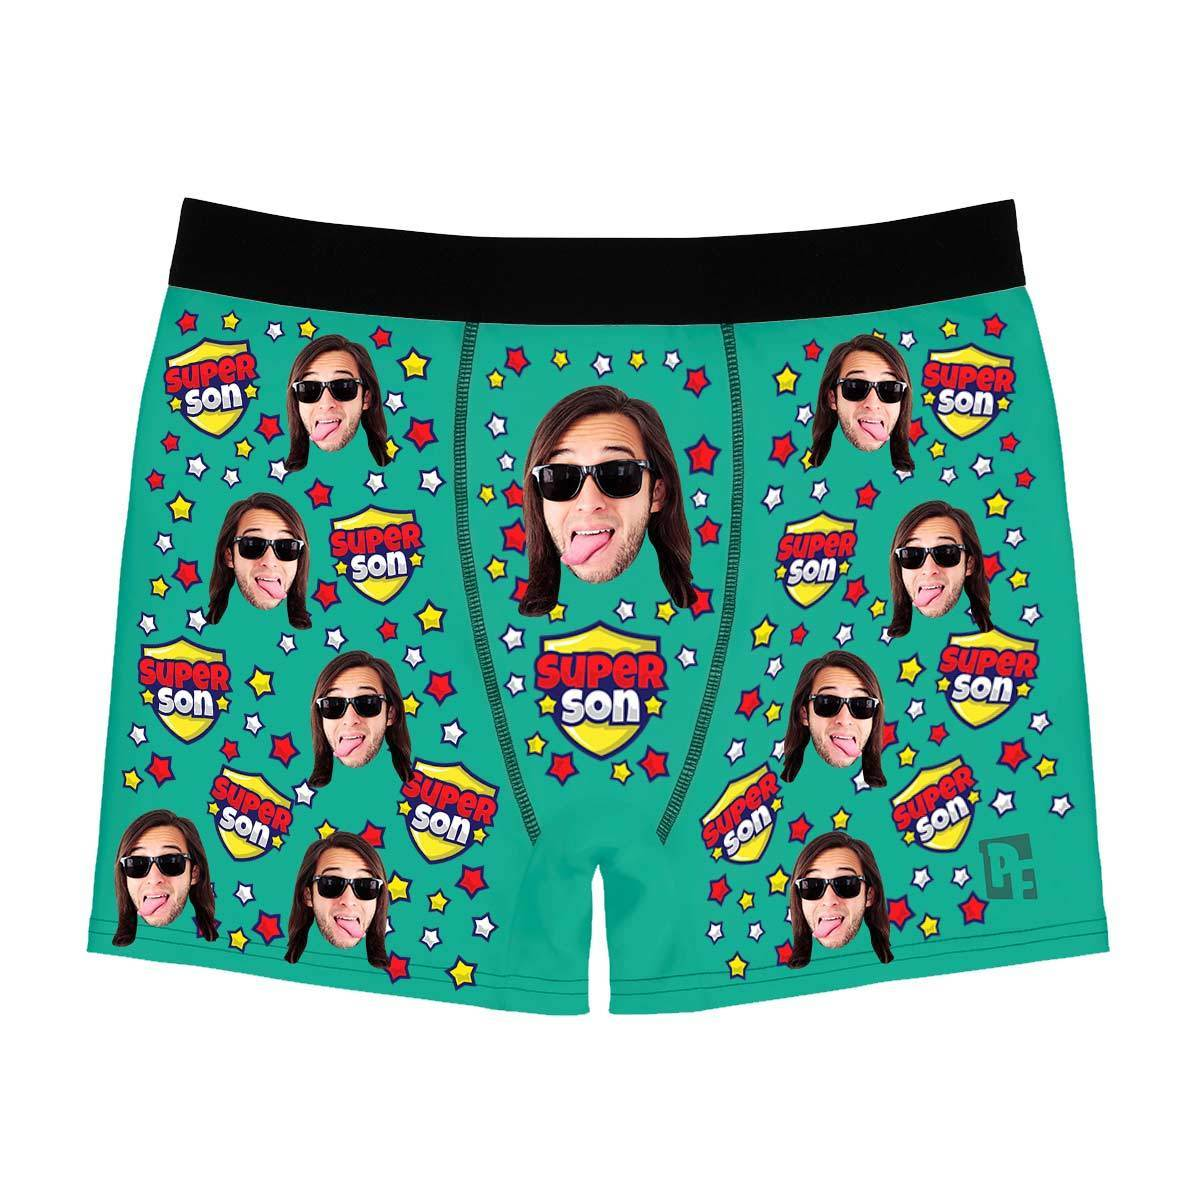 Mint Super son men's boxer briefs personalized with photo printed on them